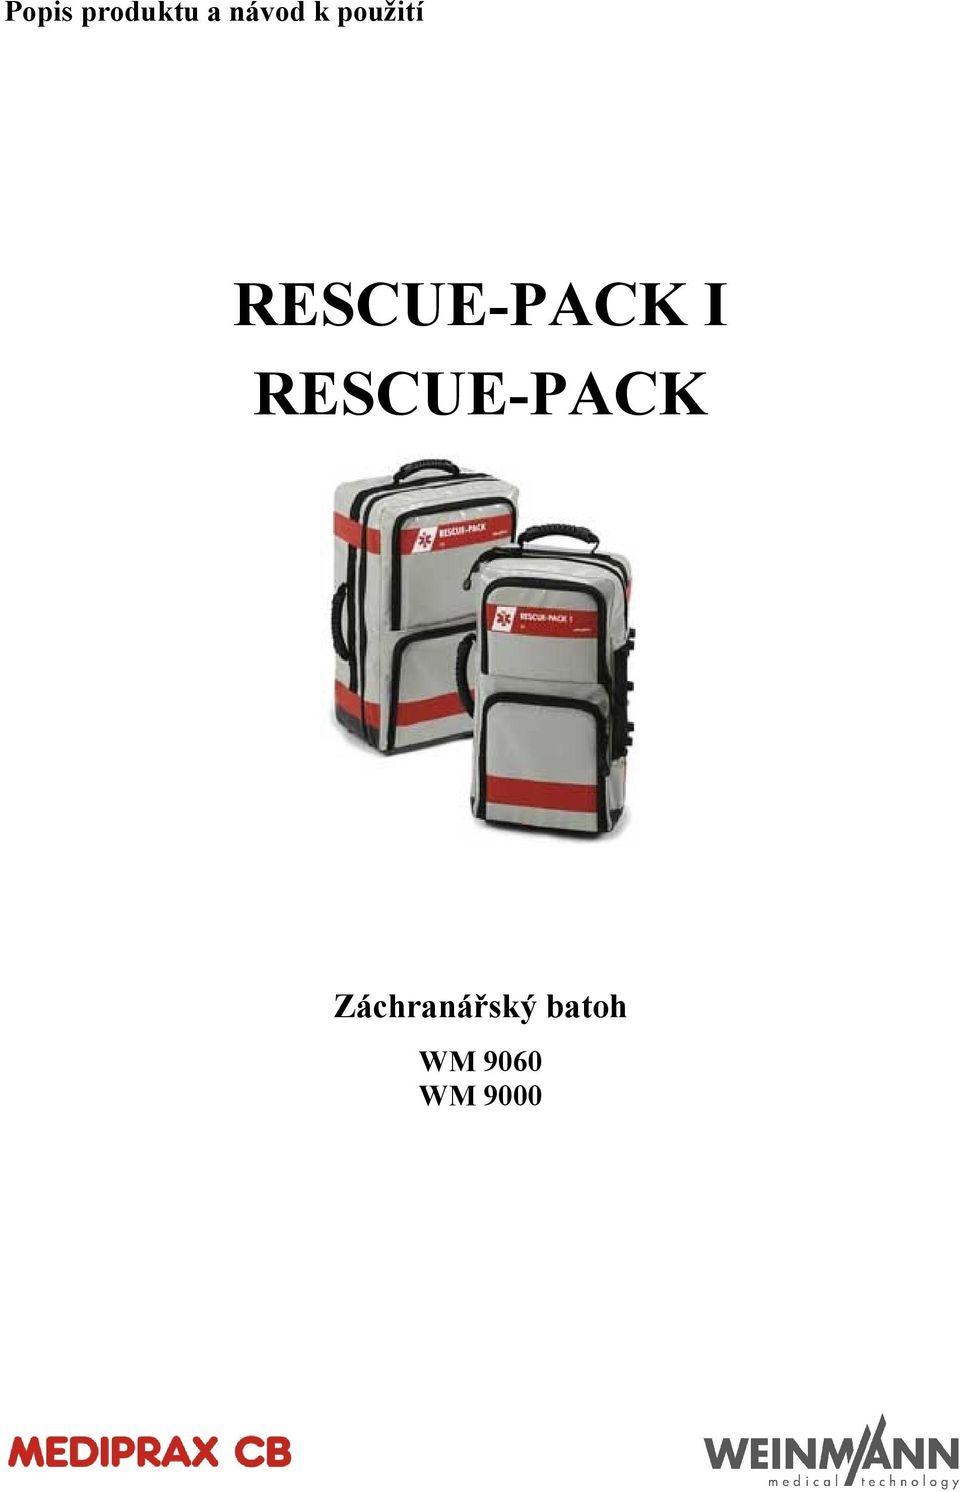 RESCUE-PACK